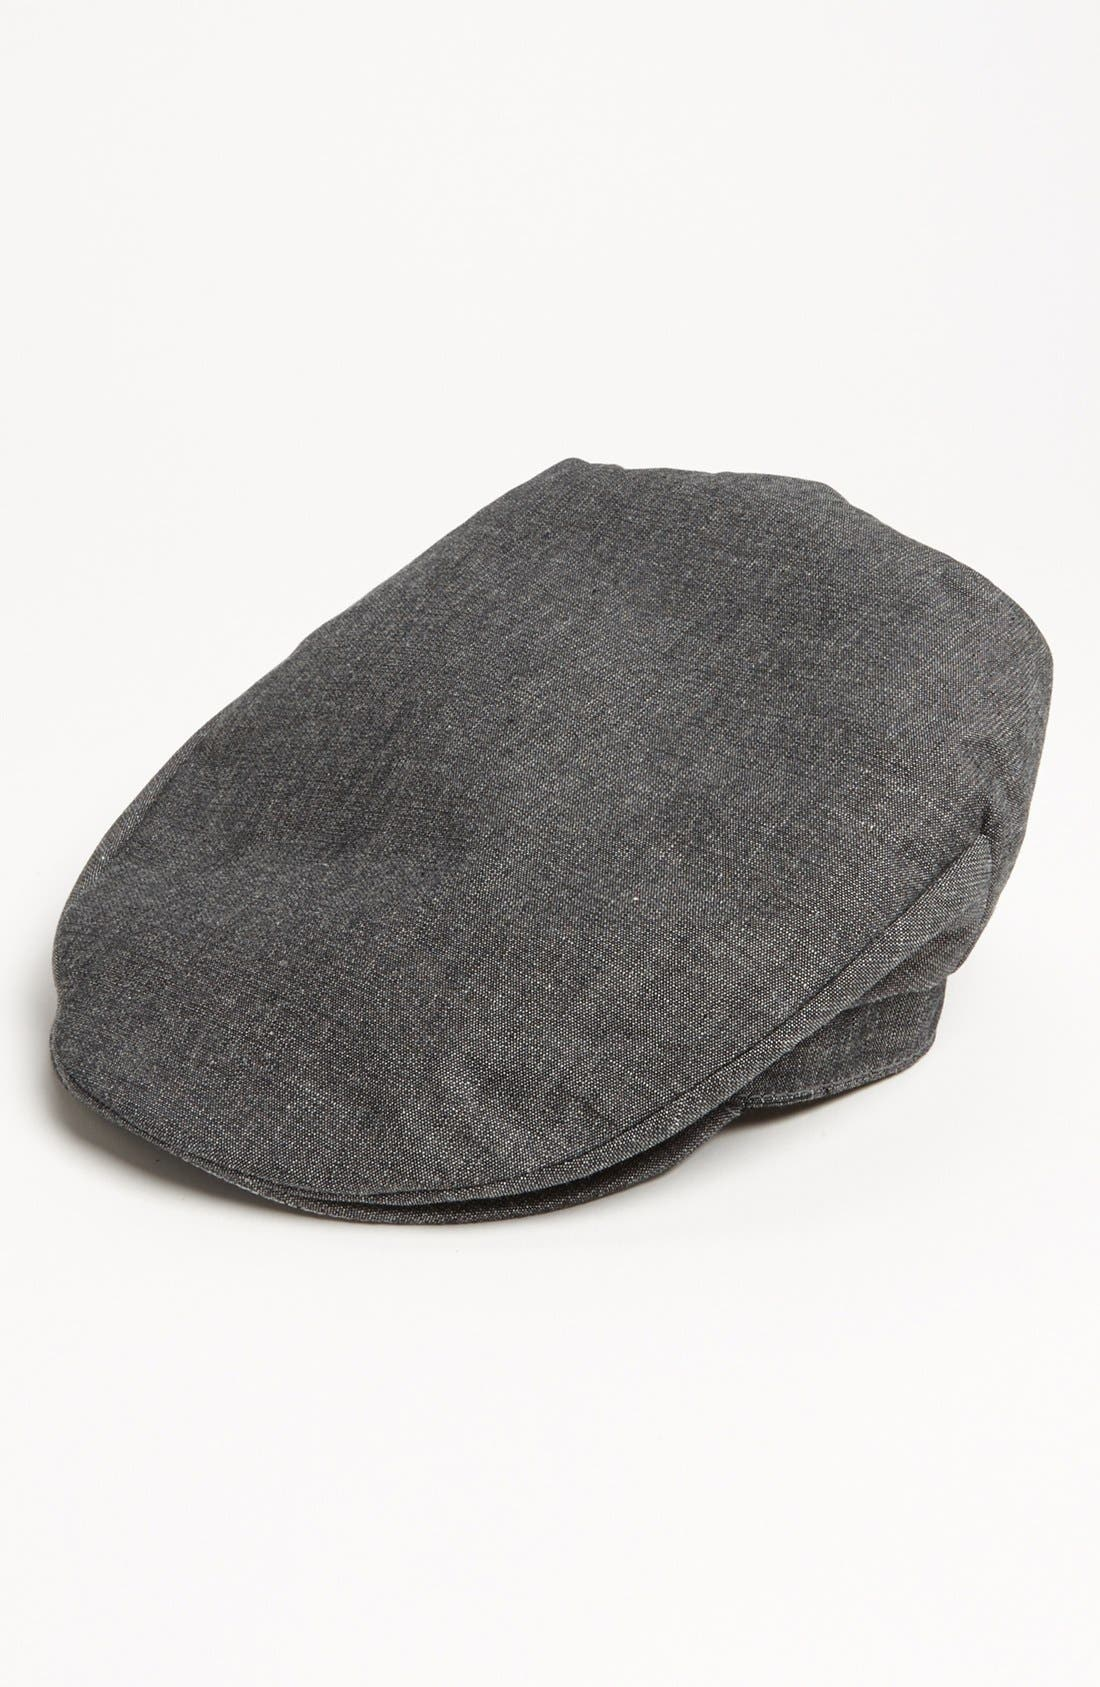 Main Image - Goorin Brothers 'Isle of Wight' Driving Cap